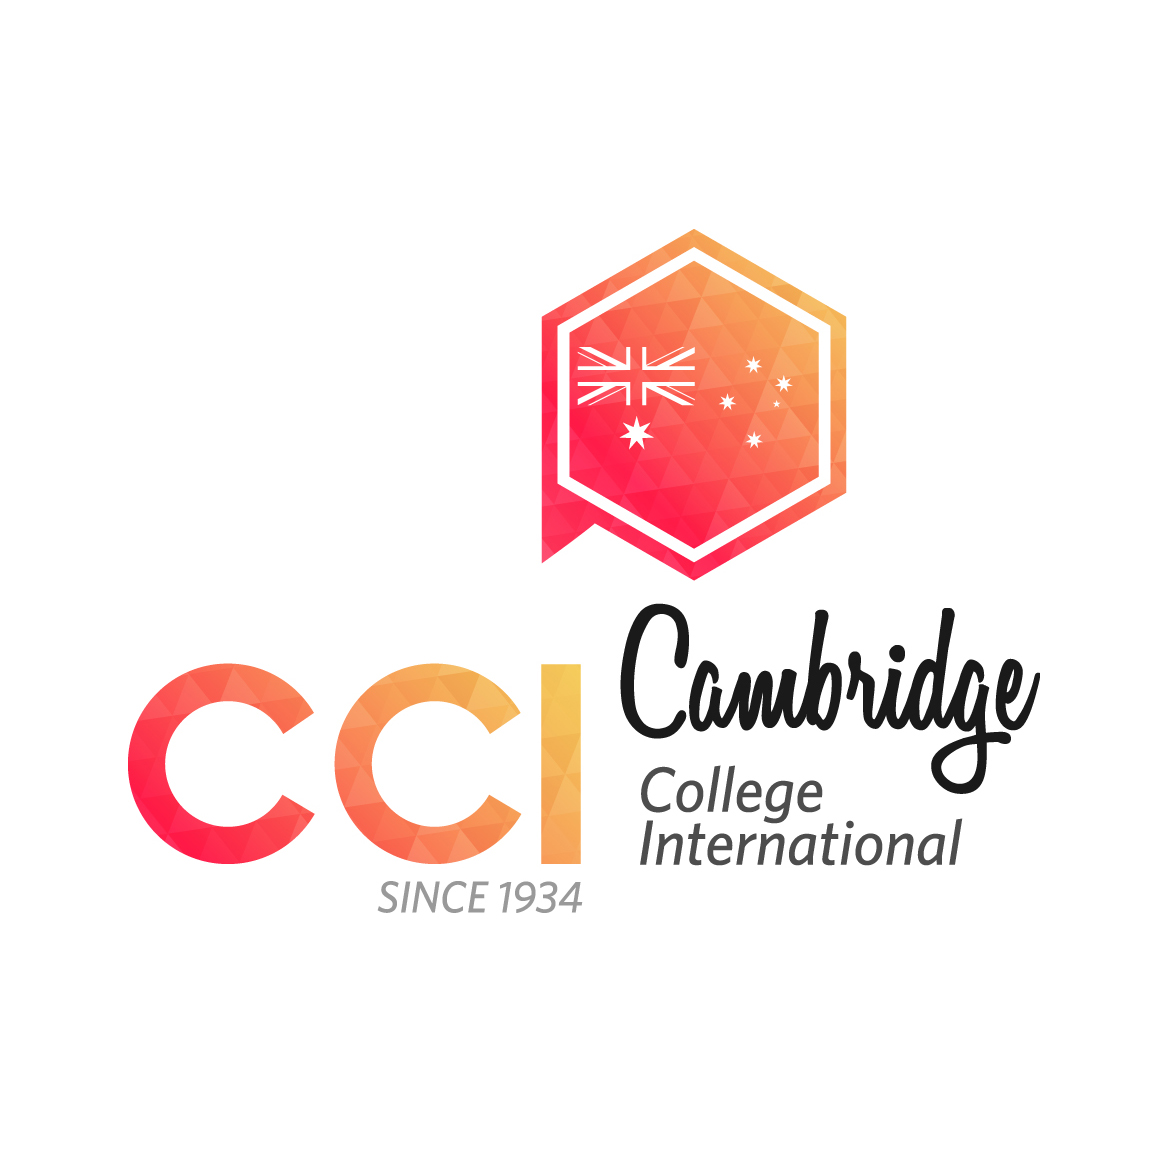 CCI Cambridge College International, Sydney, Australia